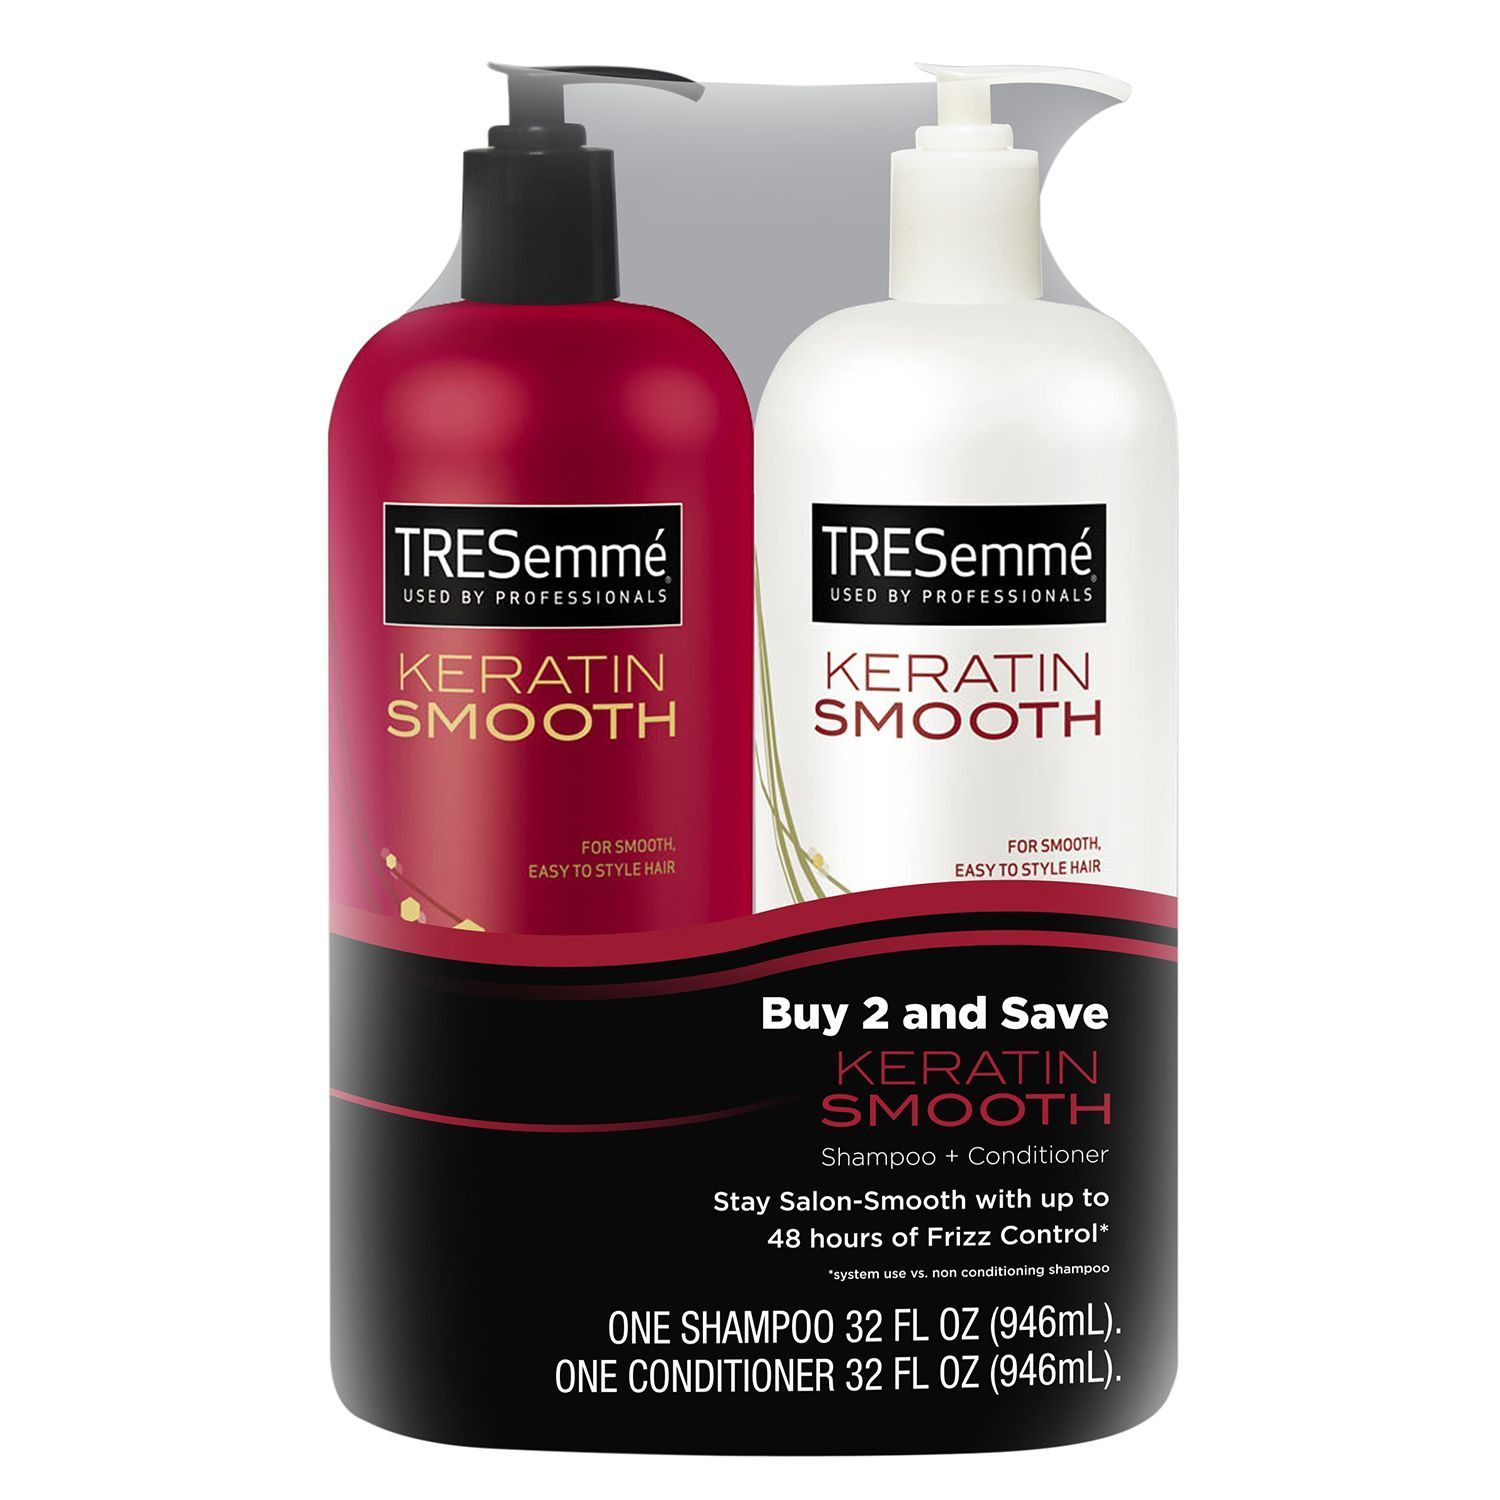 Tresemme Keratin Smooth Shampoo Conditioner Hair And Beauty Selsun 7 Herbal Anti Dandruff 120ml